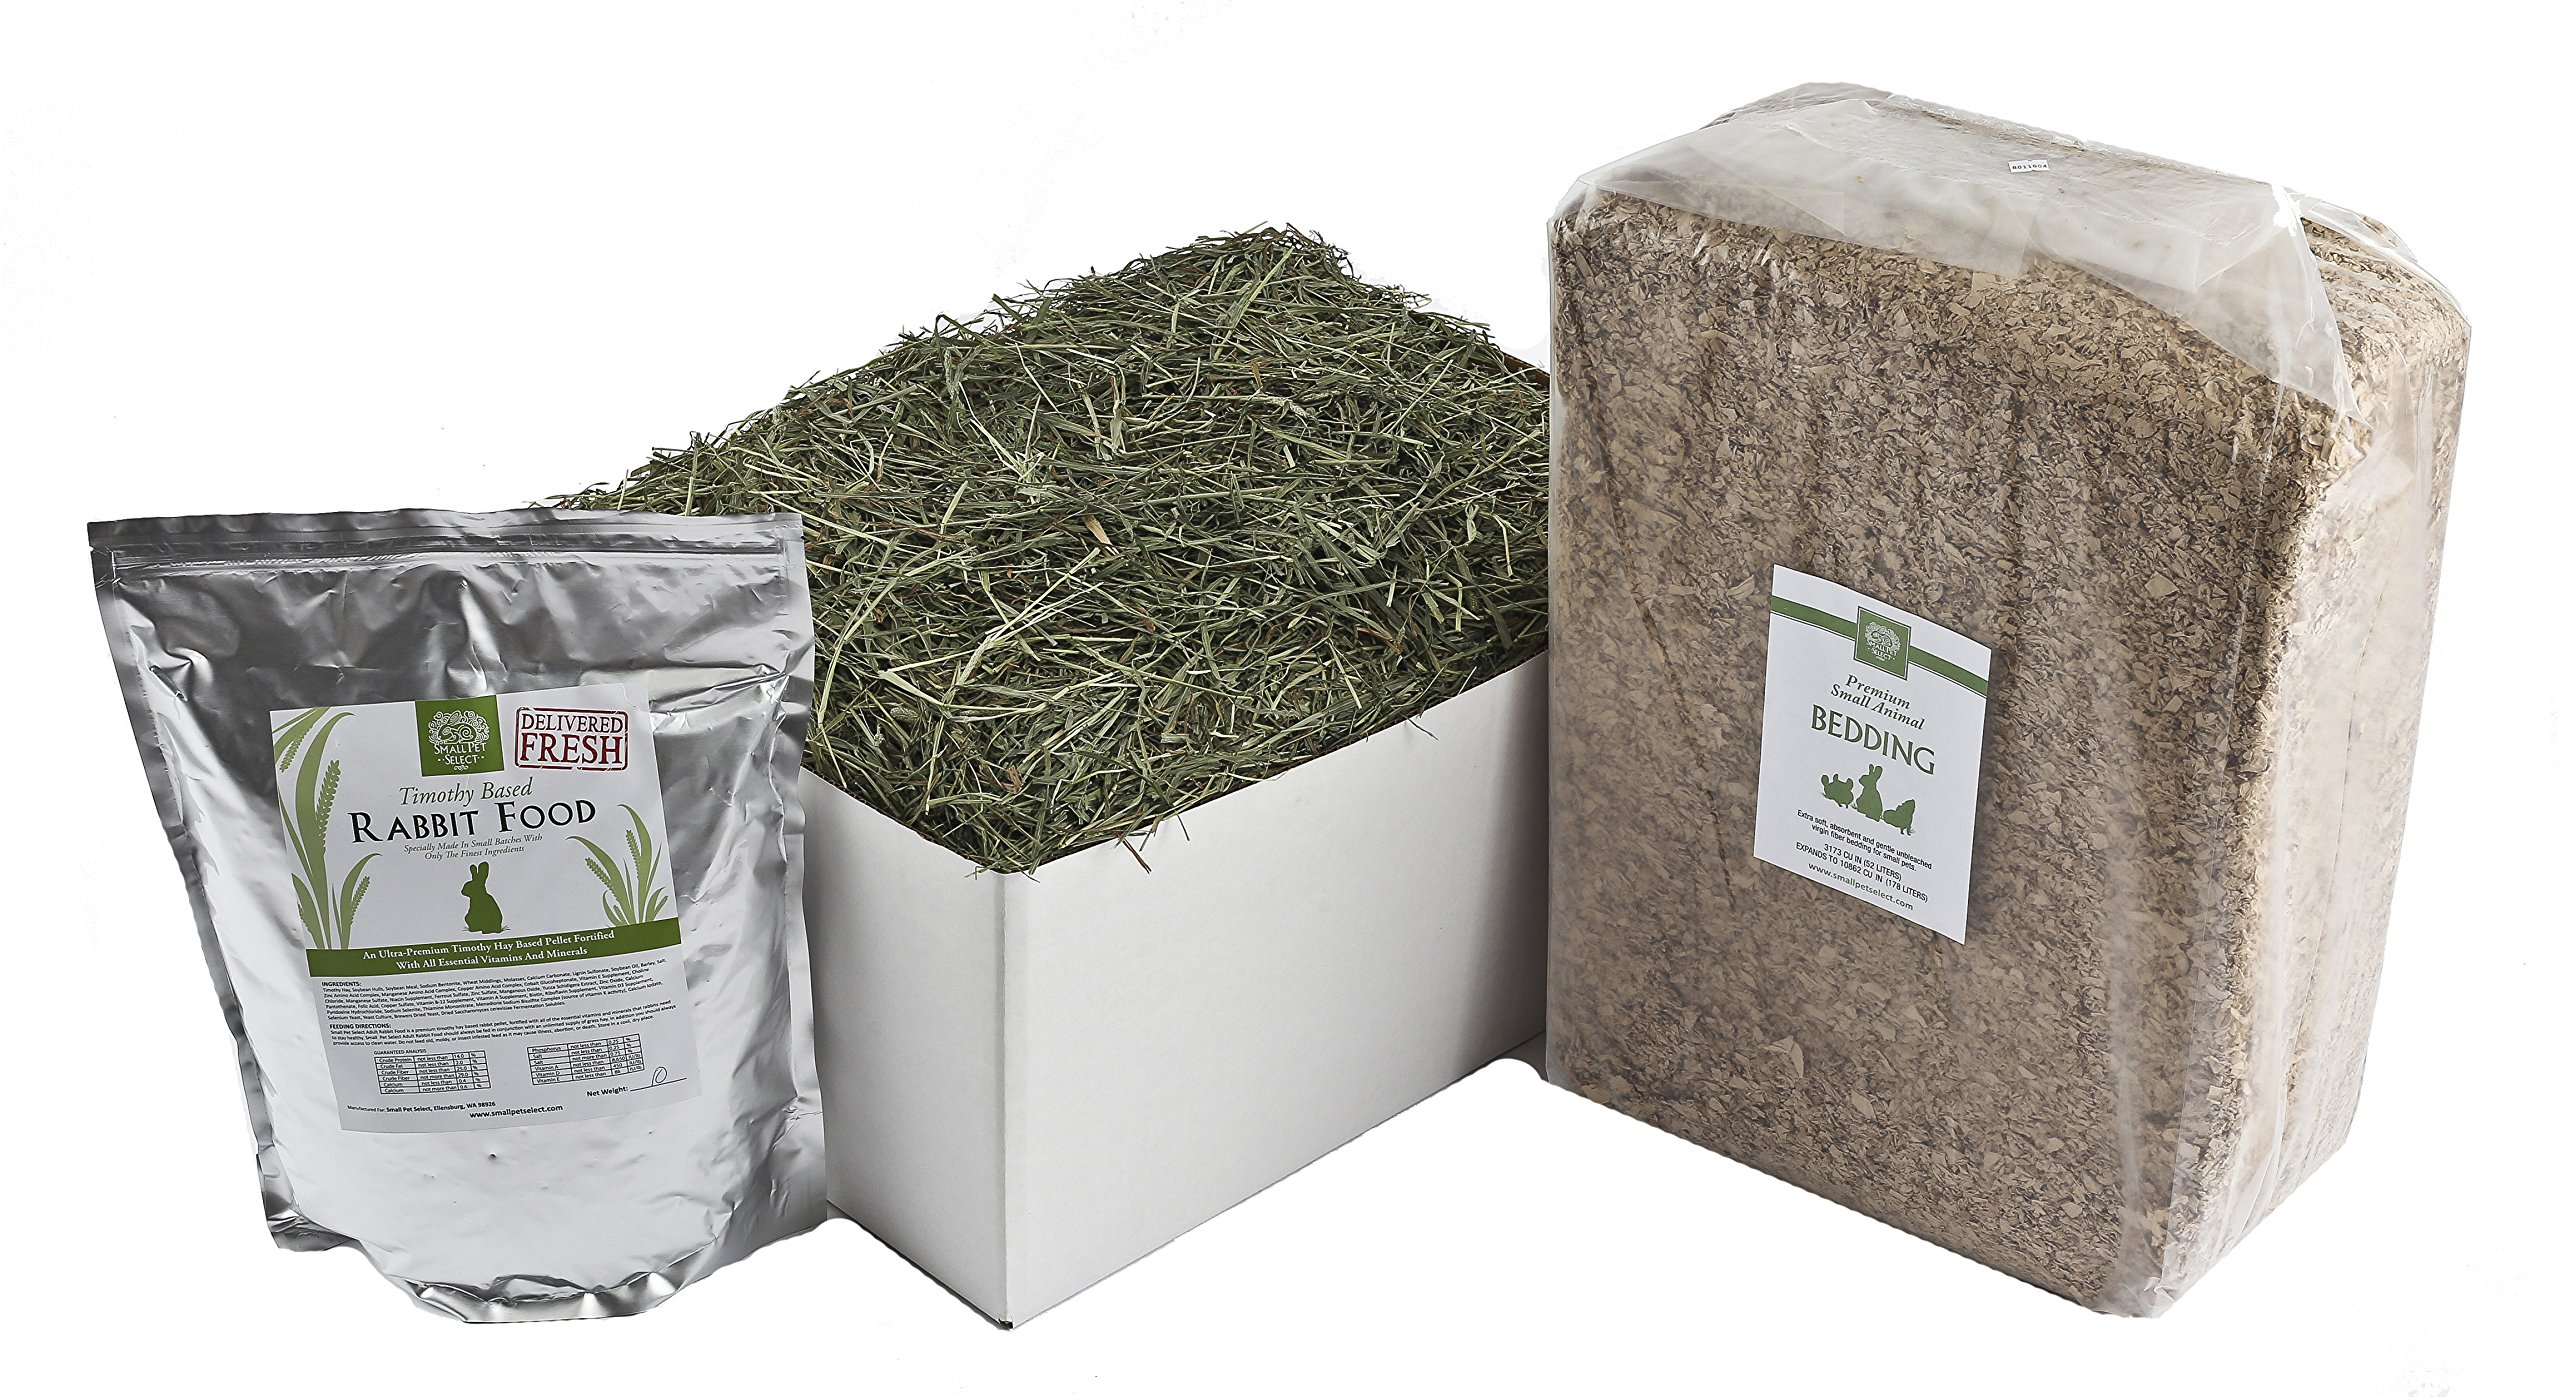 Small Pet Select Deluxe Combo Pack: Timothy Hay (20 Lb.), Rabbit Food (10 Lb.), Bedding (178L) by Small Pet Select